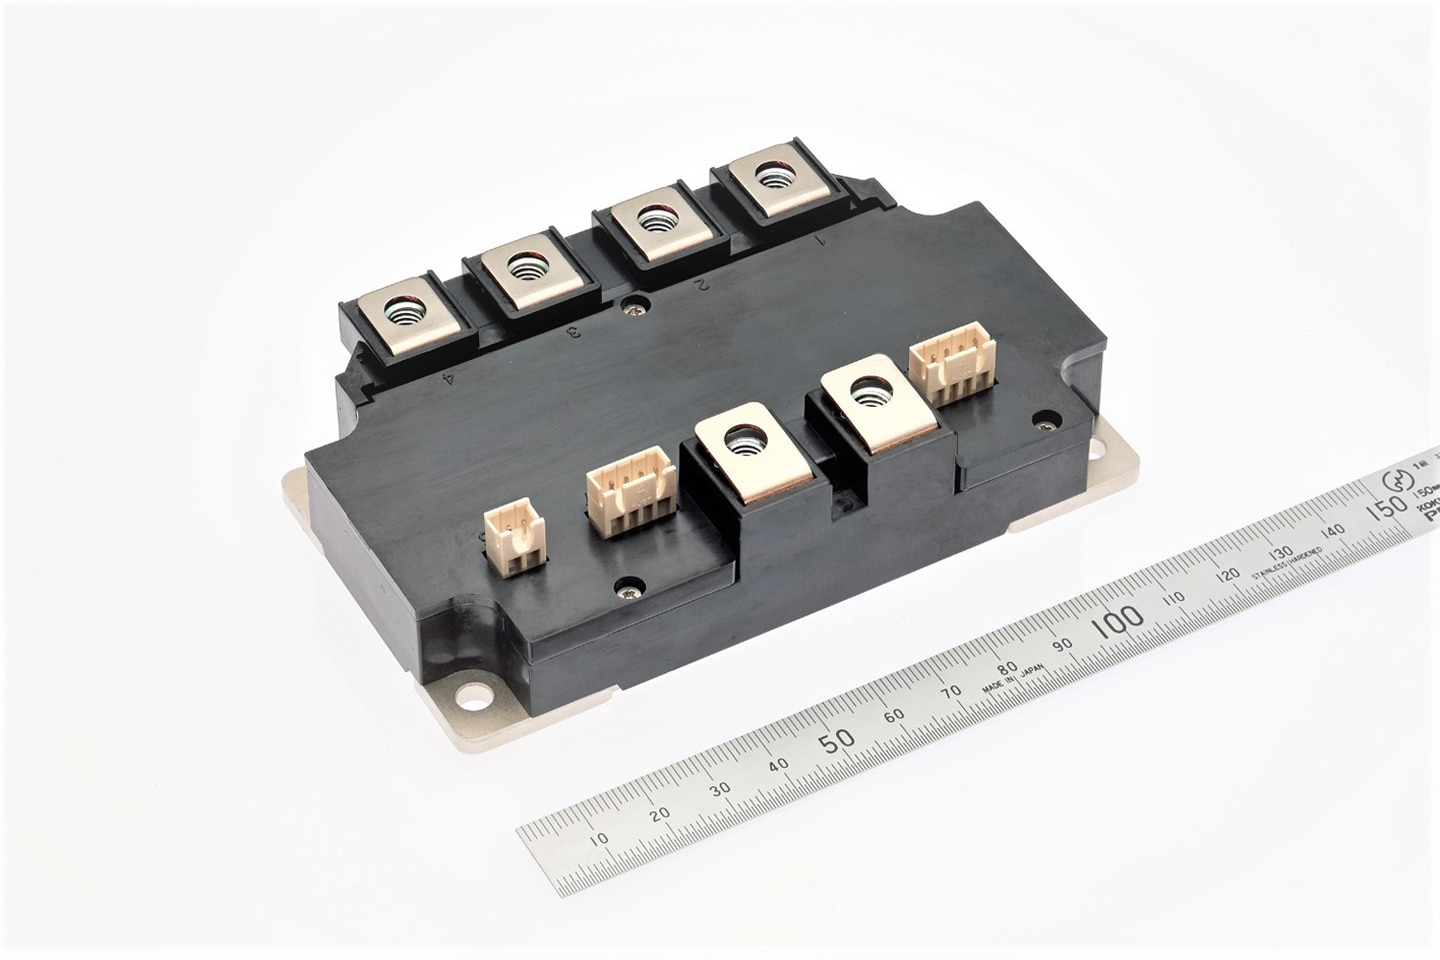 1200V/600A, 800A 2 in 1 1700V/300A 2 in 1, chopper RTC circuit embedded